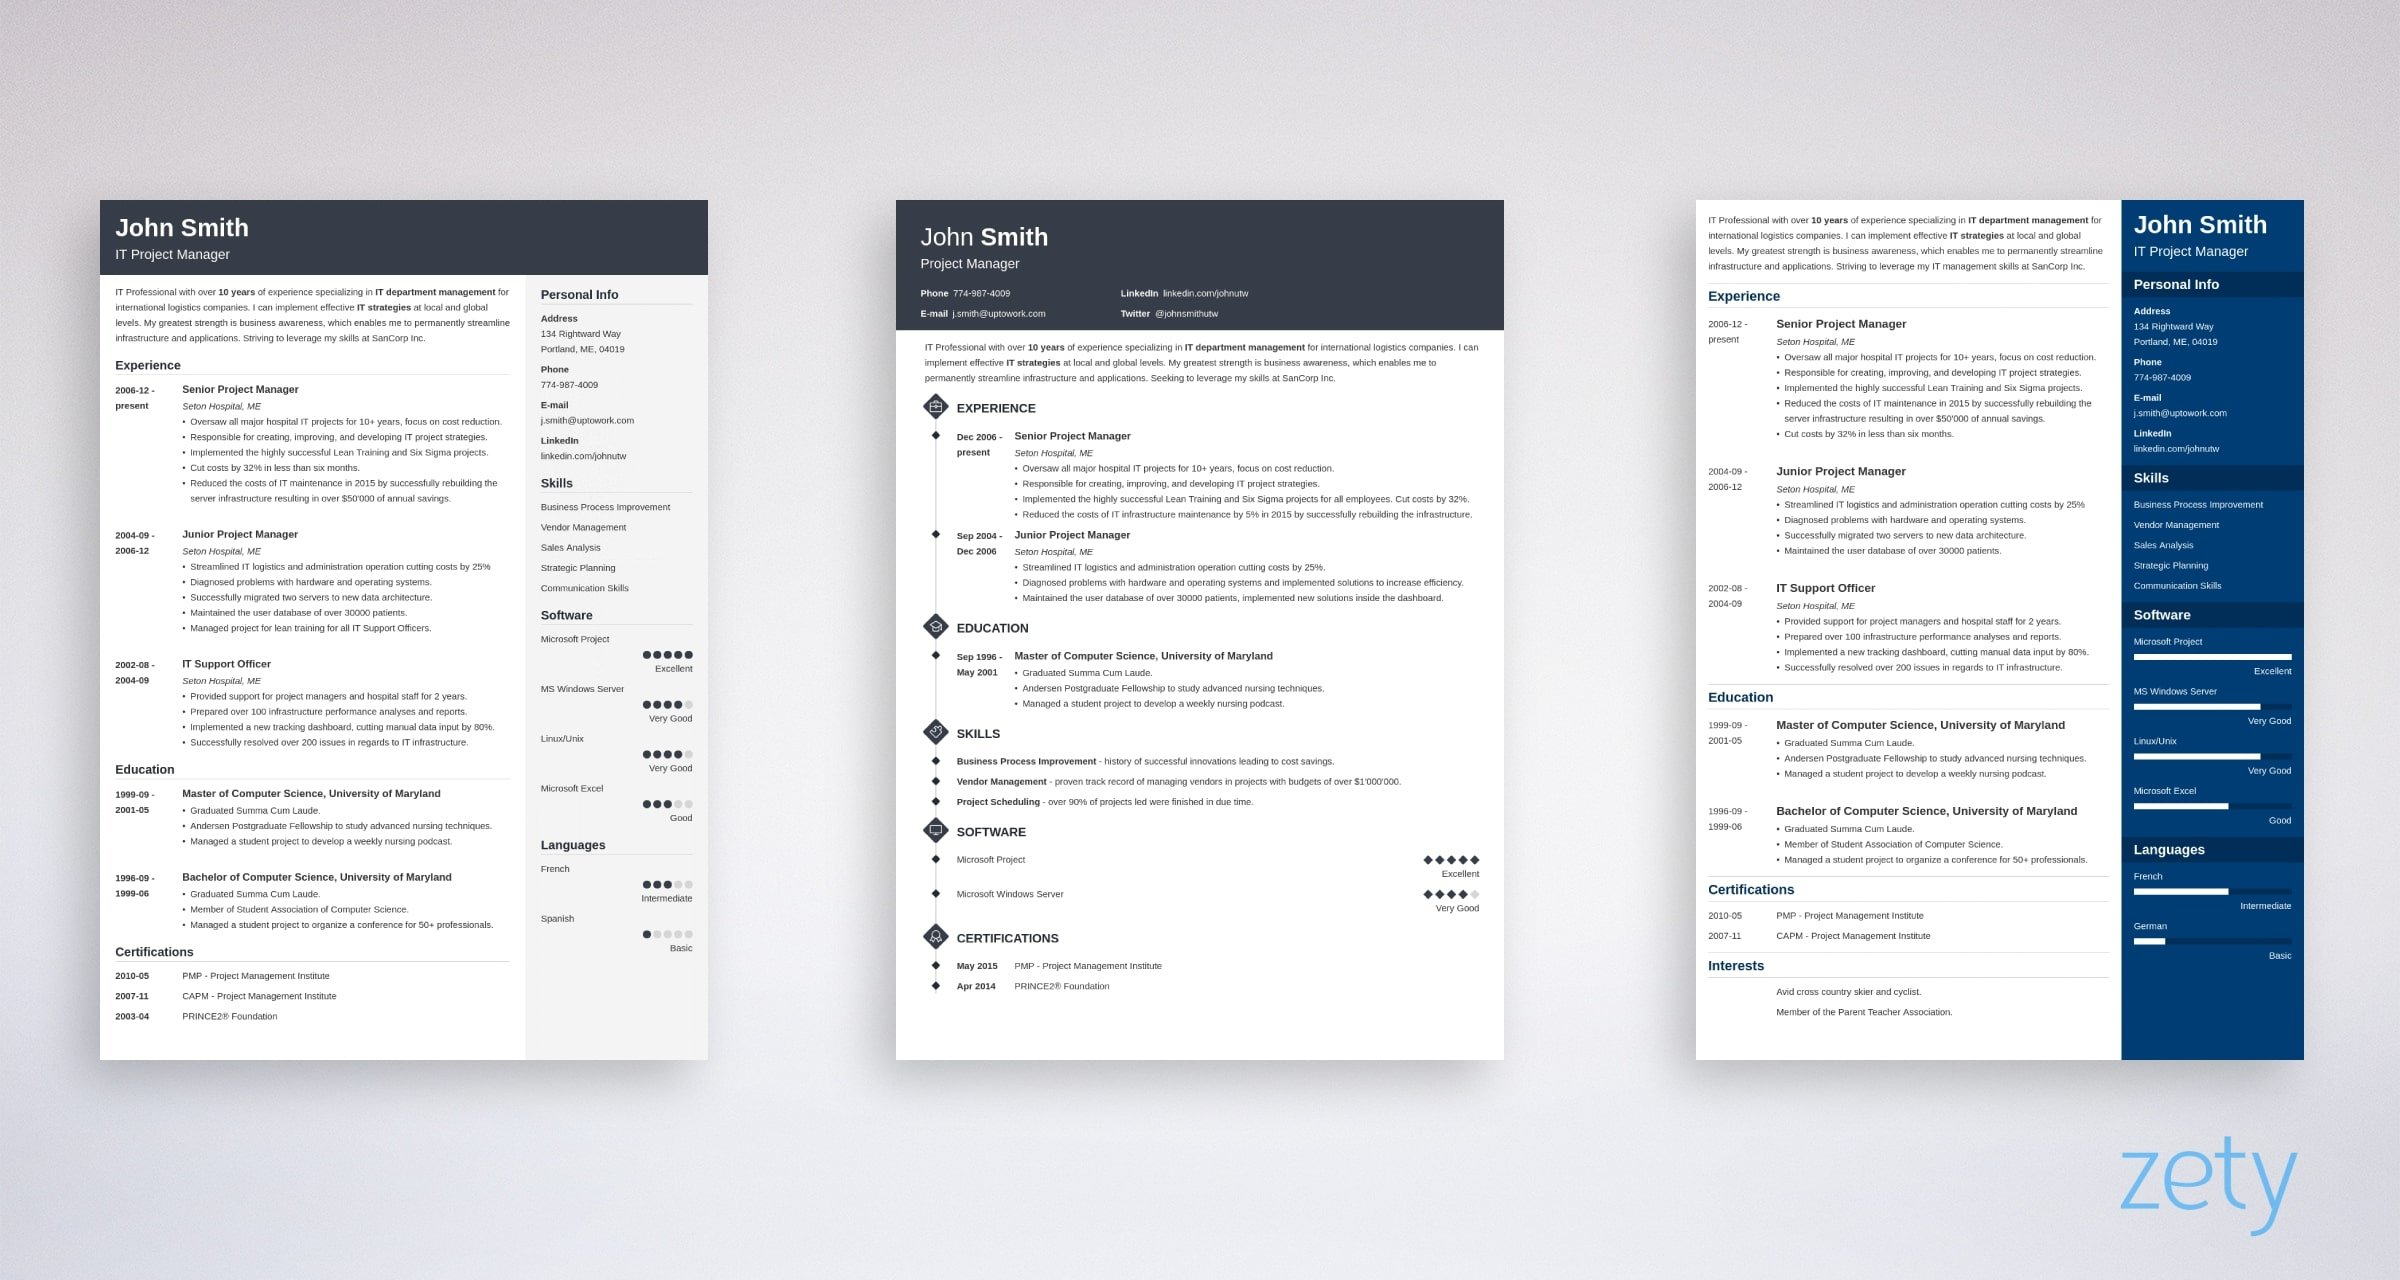 best resume builders free paid features technical writer reviews format font size for Resume Technical Resume Writer Reviews